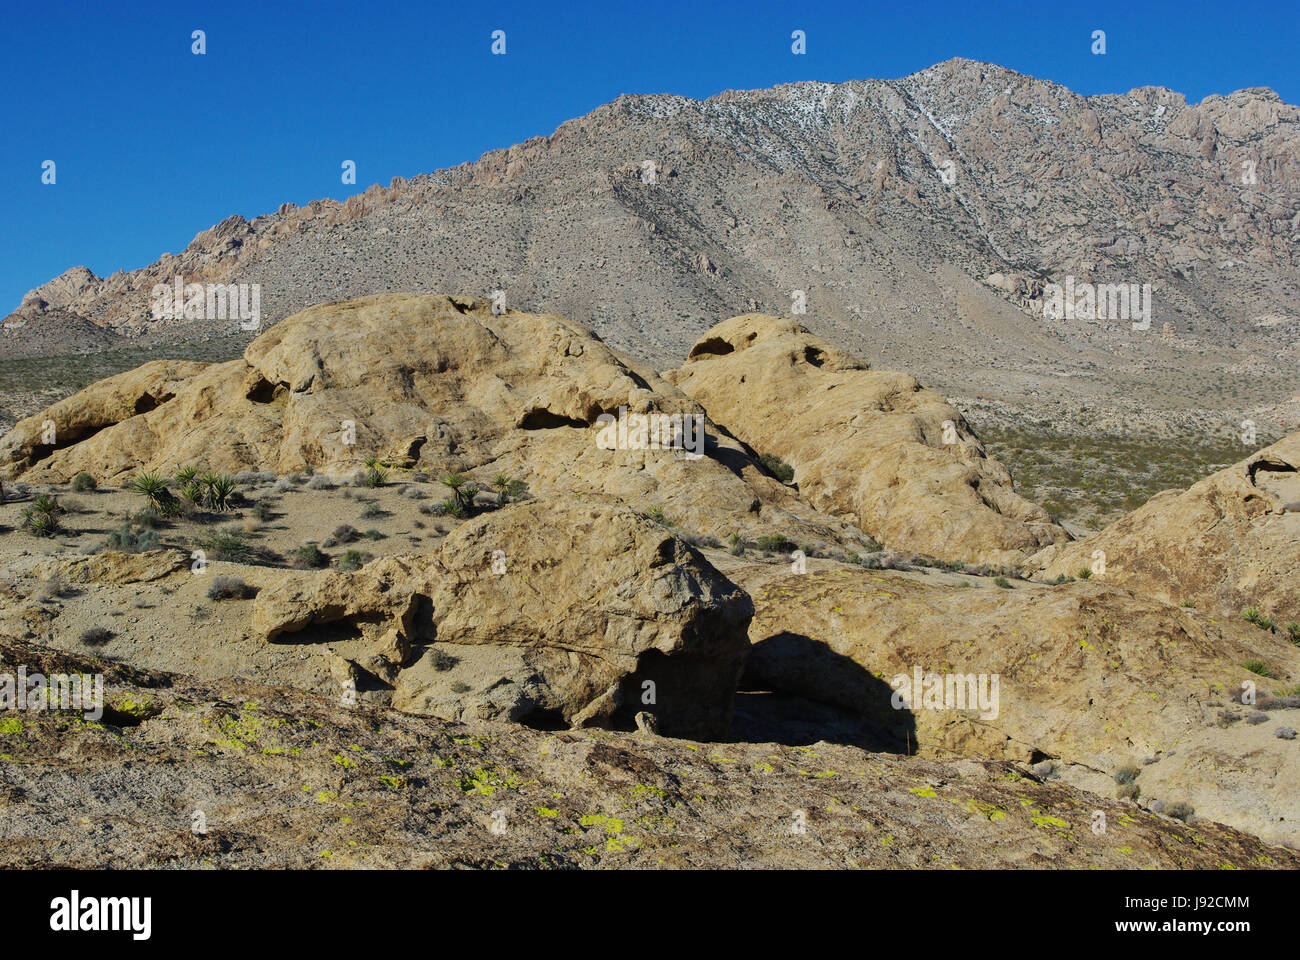 rocks and mountains near christmas tree passnevada stock image